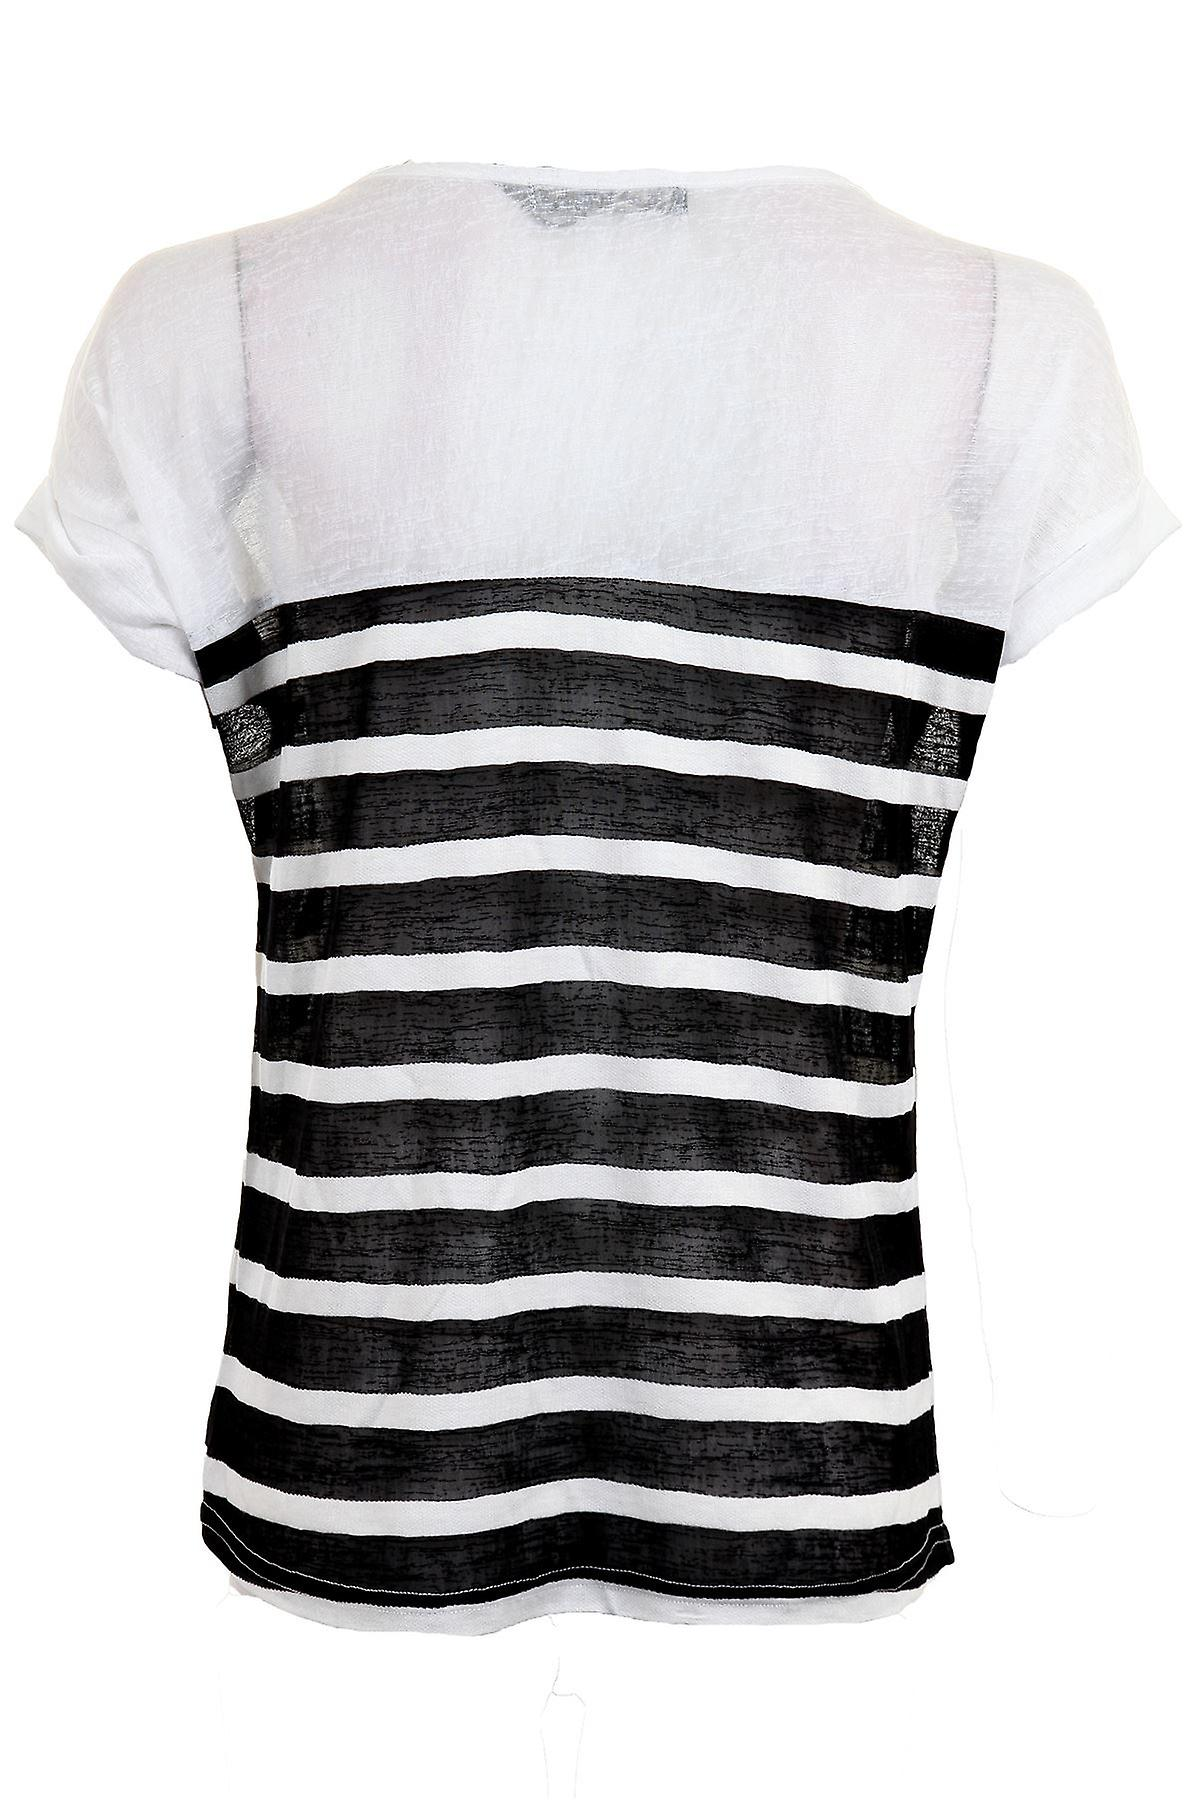 Ladies Mesh Striped Short Turn Up Sleeve Baggy Oversized Women's Smart Top